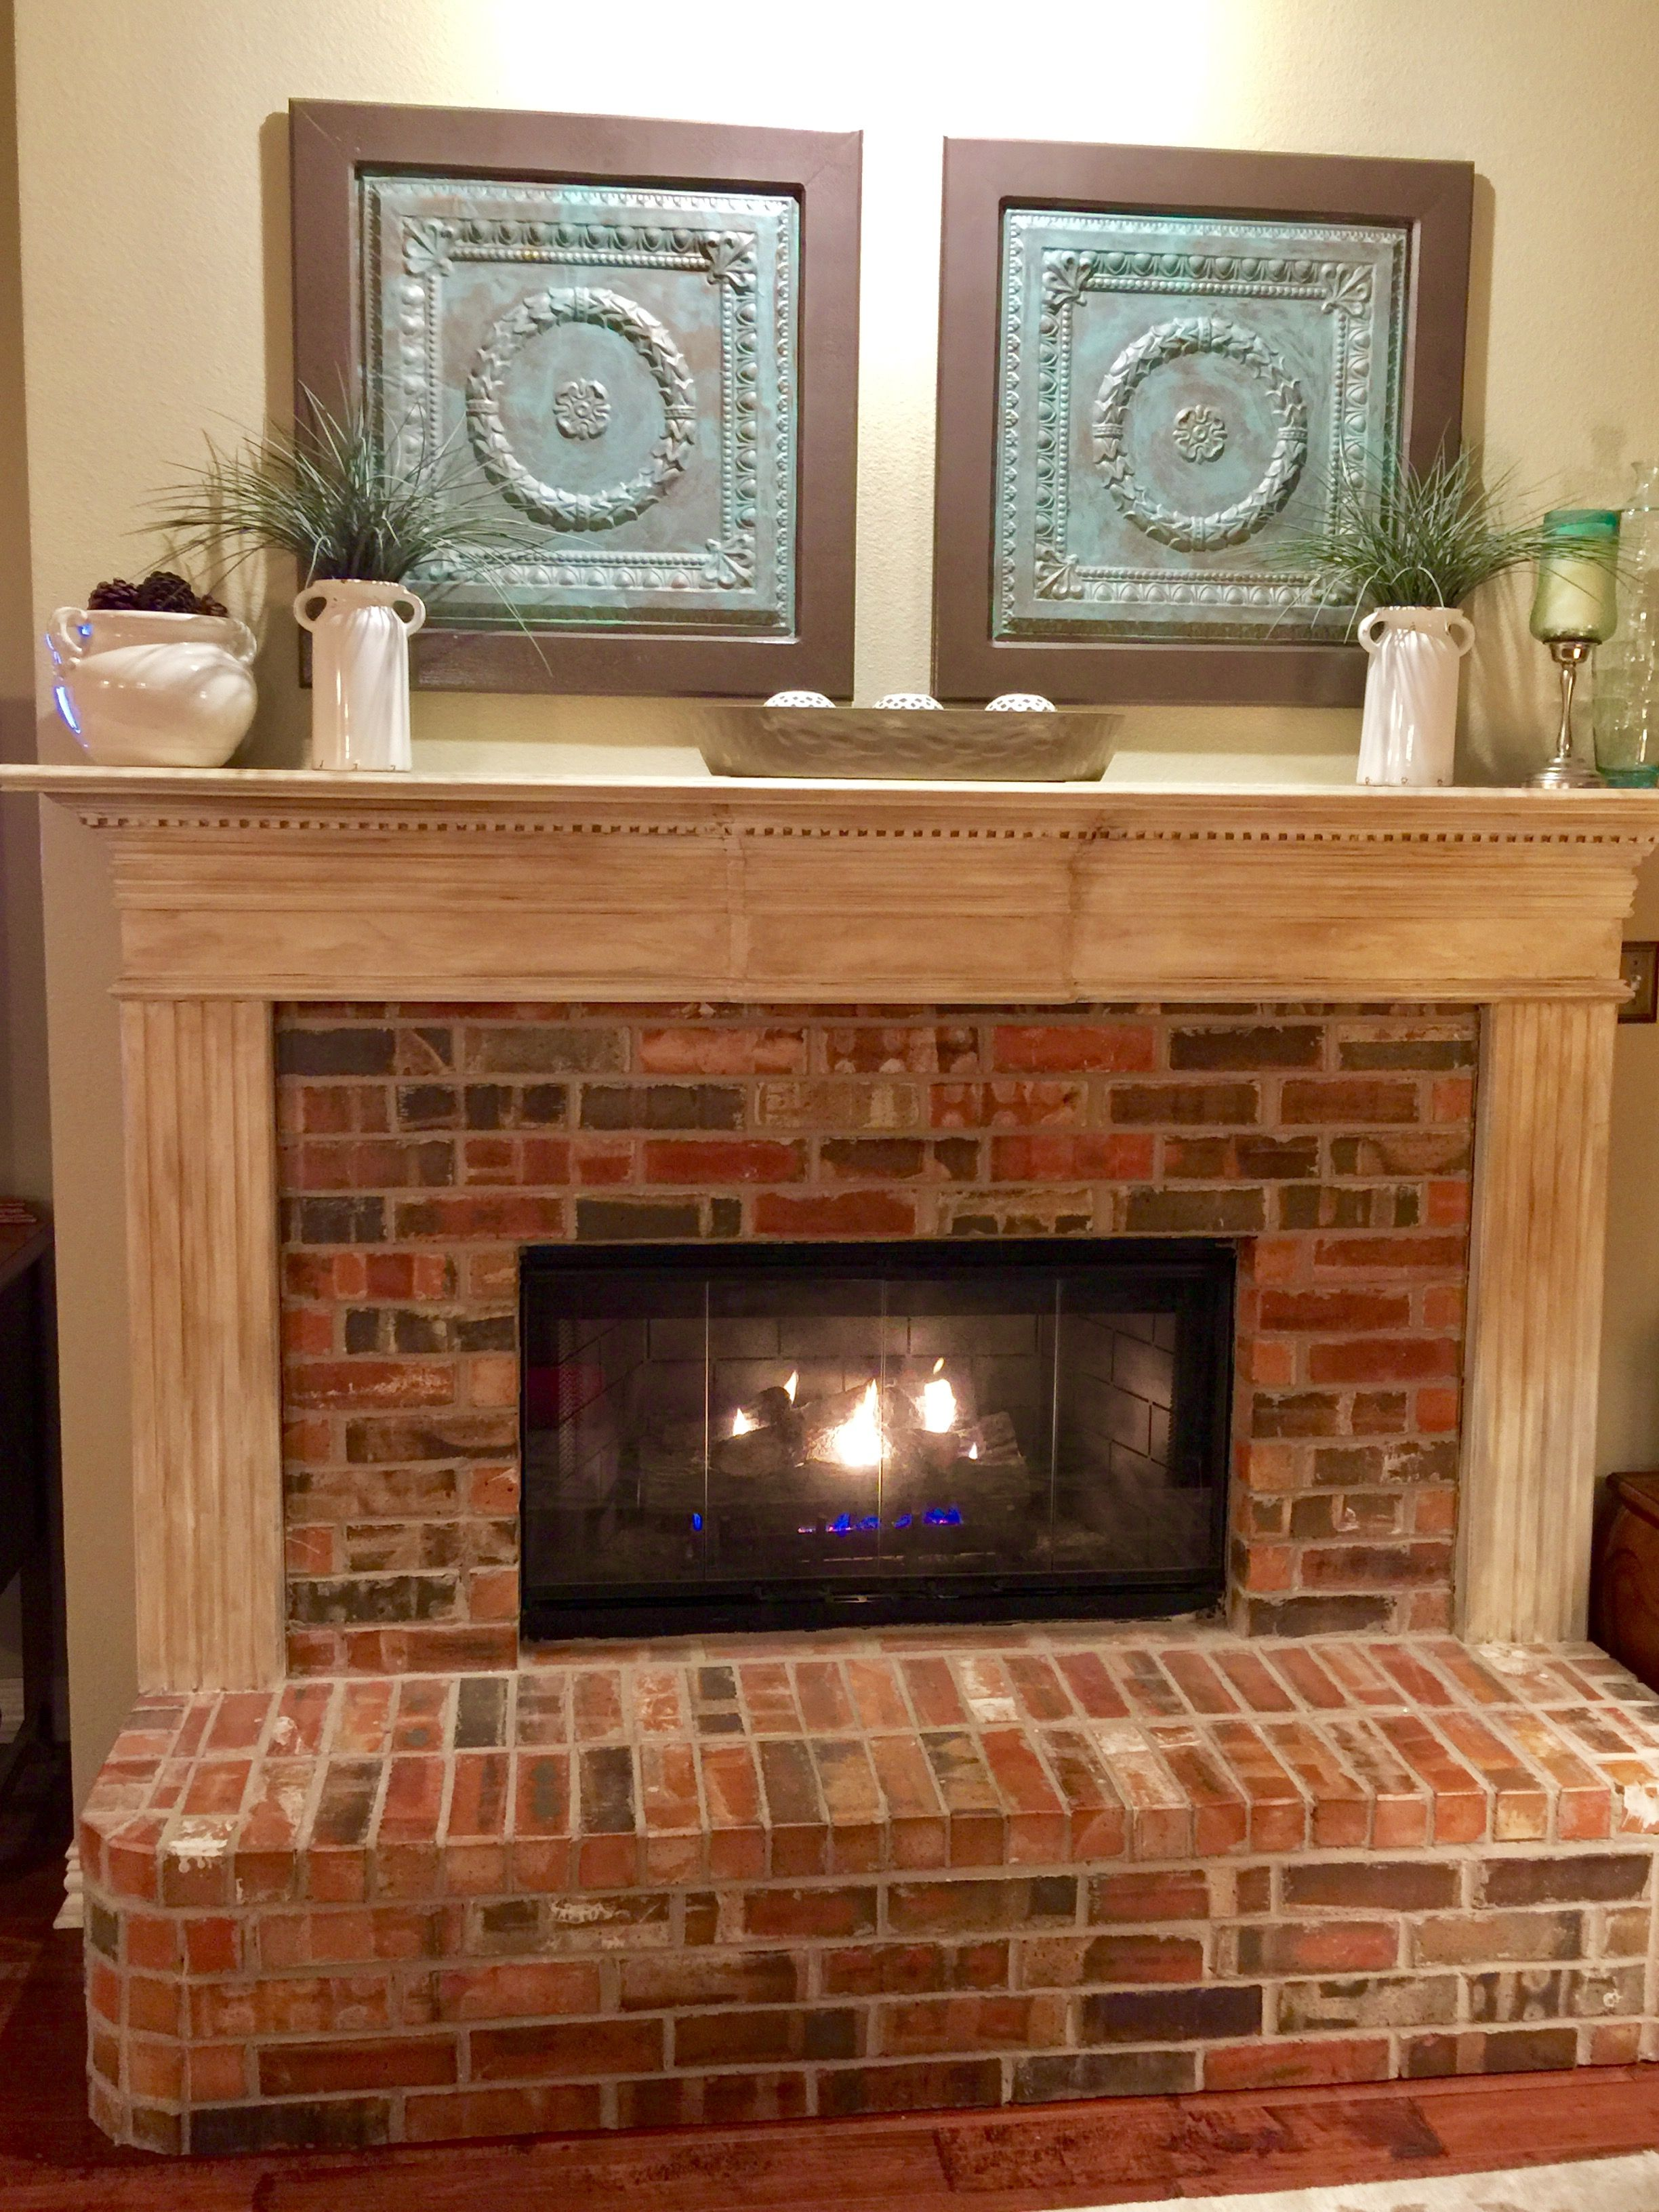 Annie sloan mantle makeover brick fireplace refurbished ceiling annie sloan mantle makeover brick fireplace refurbished ceiling tiles simple decor dailygadgetfo Gallery